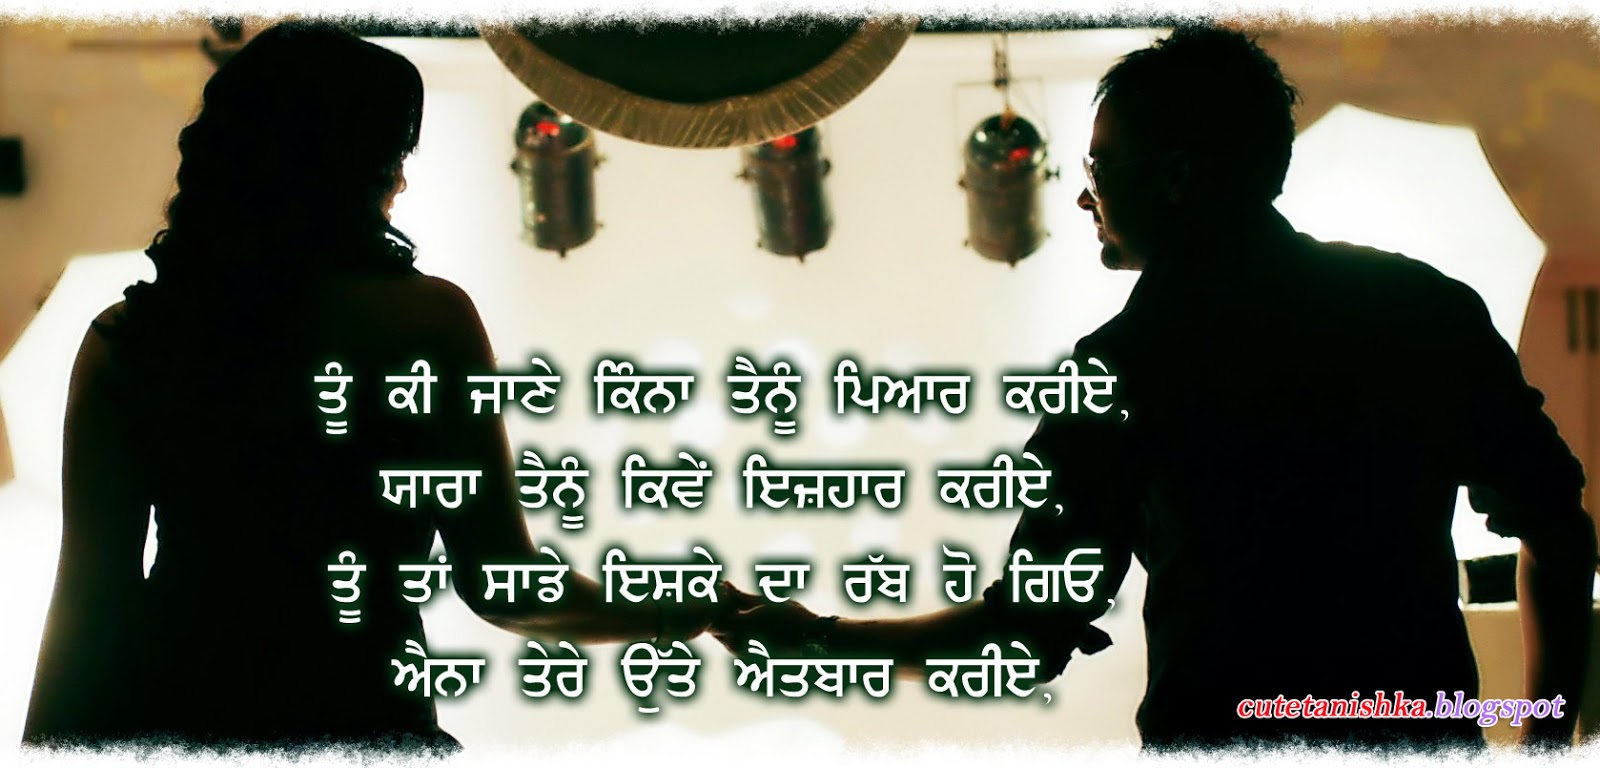 Cute Love Quotes For Her In Punjabi : ... in Punjabi Punjabi Love Quote Wallpaper For Beloved Cute Tanishka